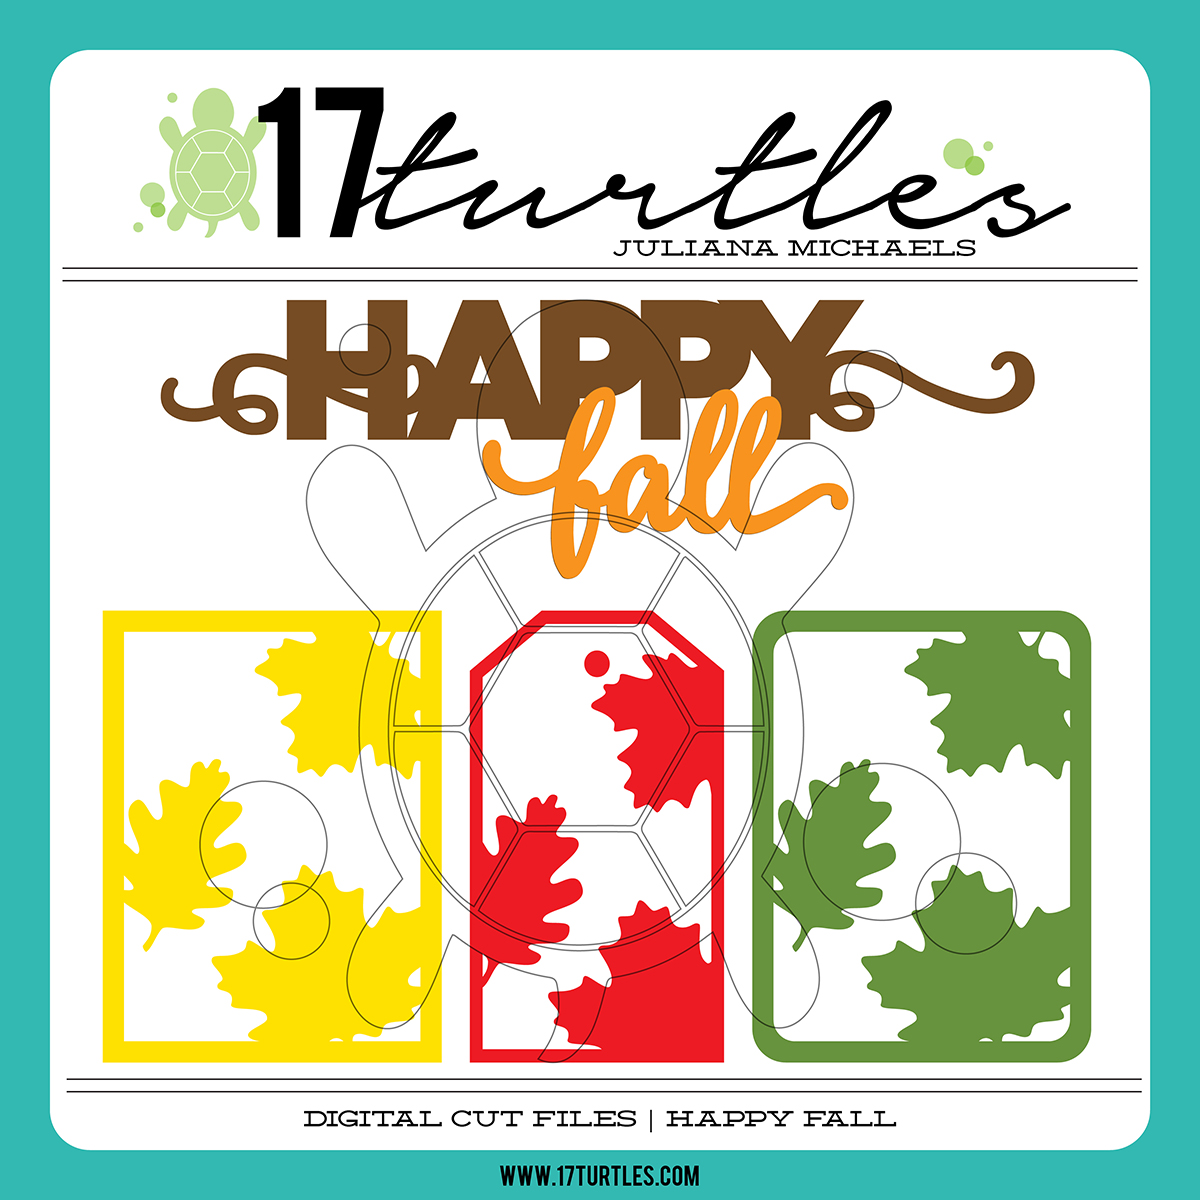 17turtles Digital Cut Files Happy Fall